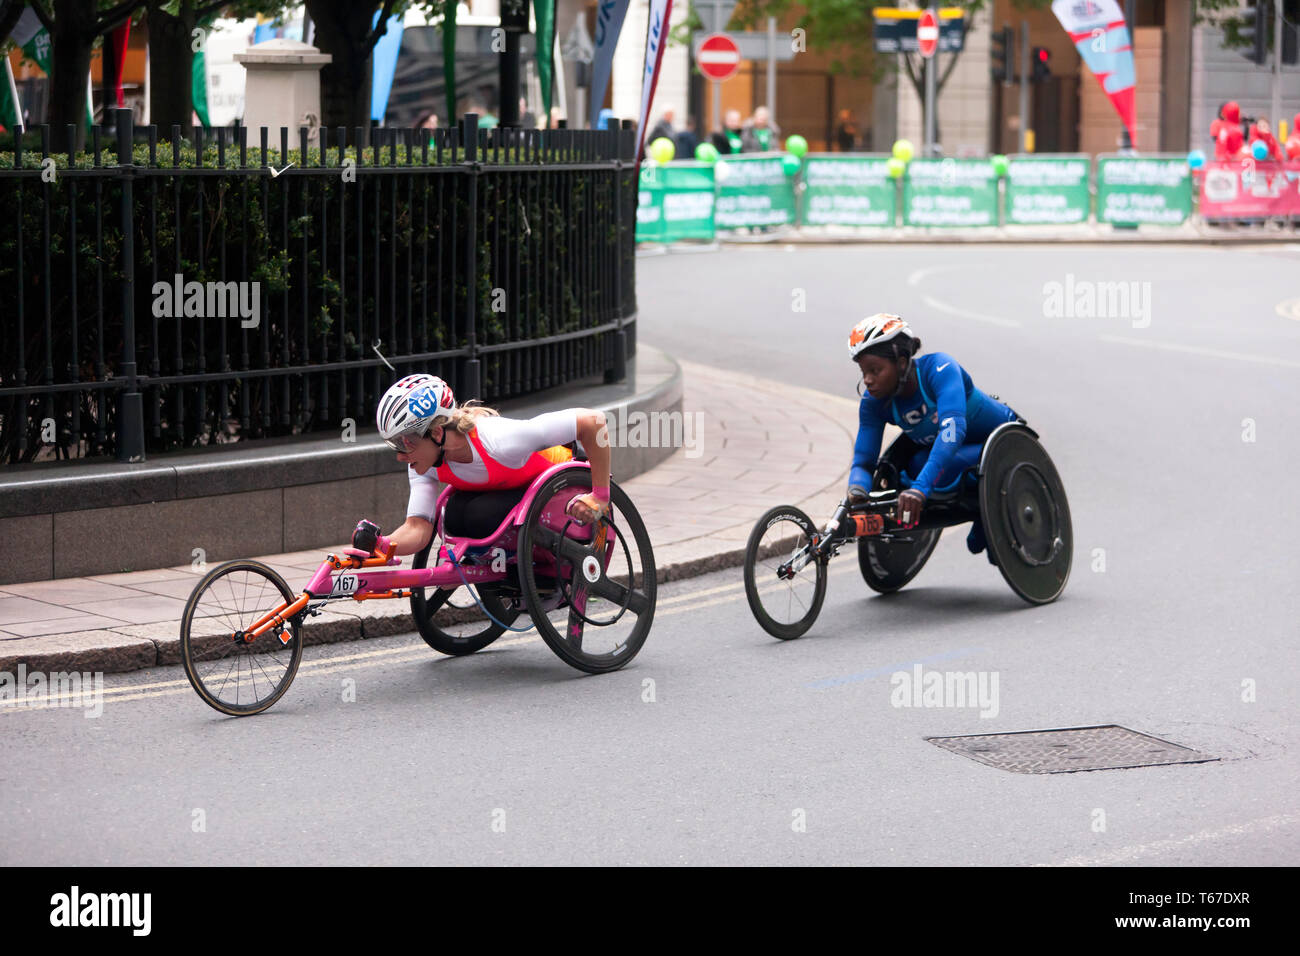 Mel Nicholls (GBR), and Michelle Wheeler (USA ) racing in the 2019 London Marathon Women's Elite Wheelchair Category (T53/T54).  Michelle  finish  14th in 02:03:37 and Mel finished 15th in the in a time of 02:03:39. - Stock Image